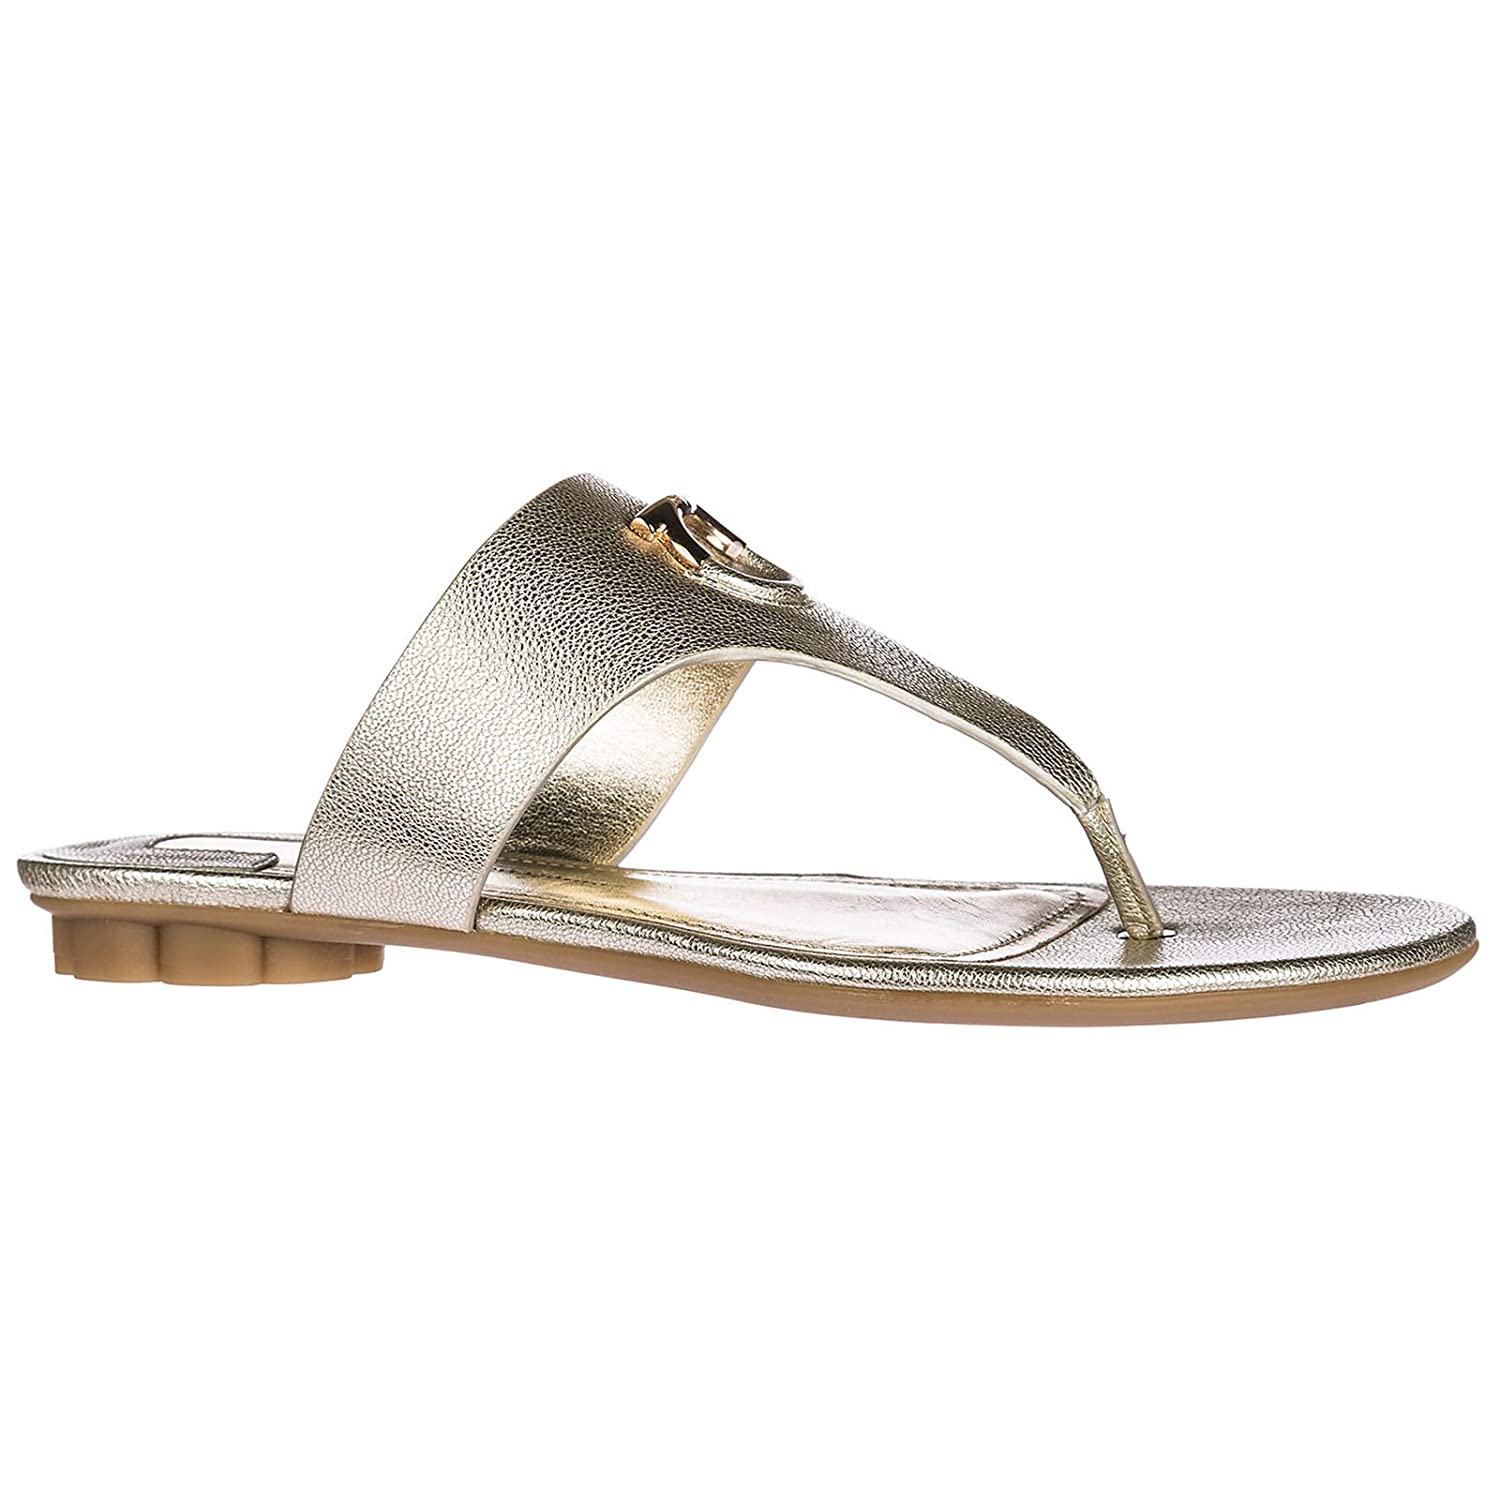 8135afbcf Salvatore Ferragamo Women Enfola flip Flops oro  Amazon.co.uk  Shoes   Bags